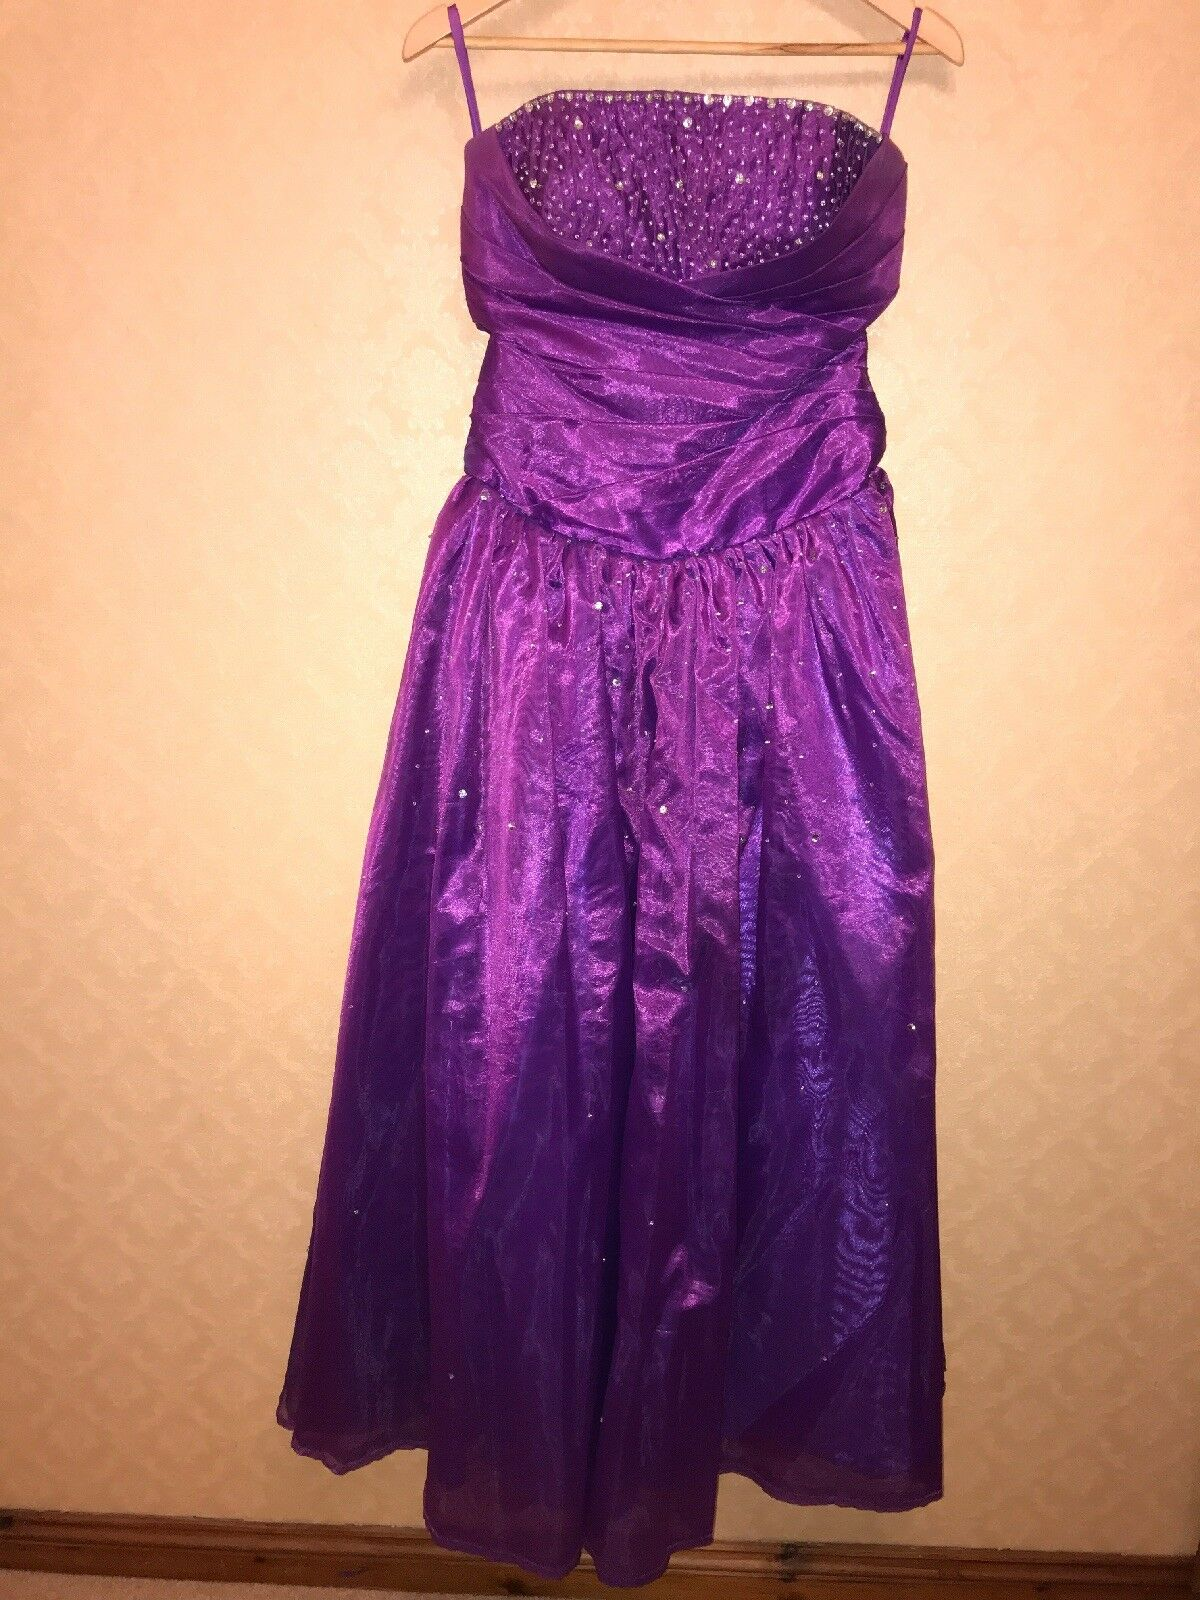 Prom dress size 10 used